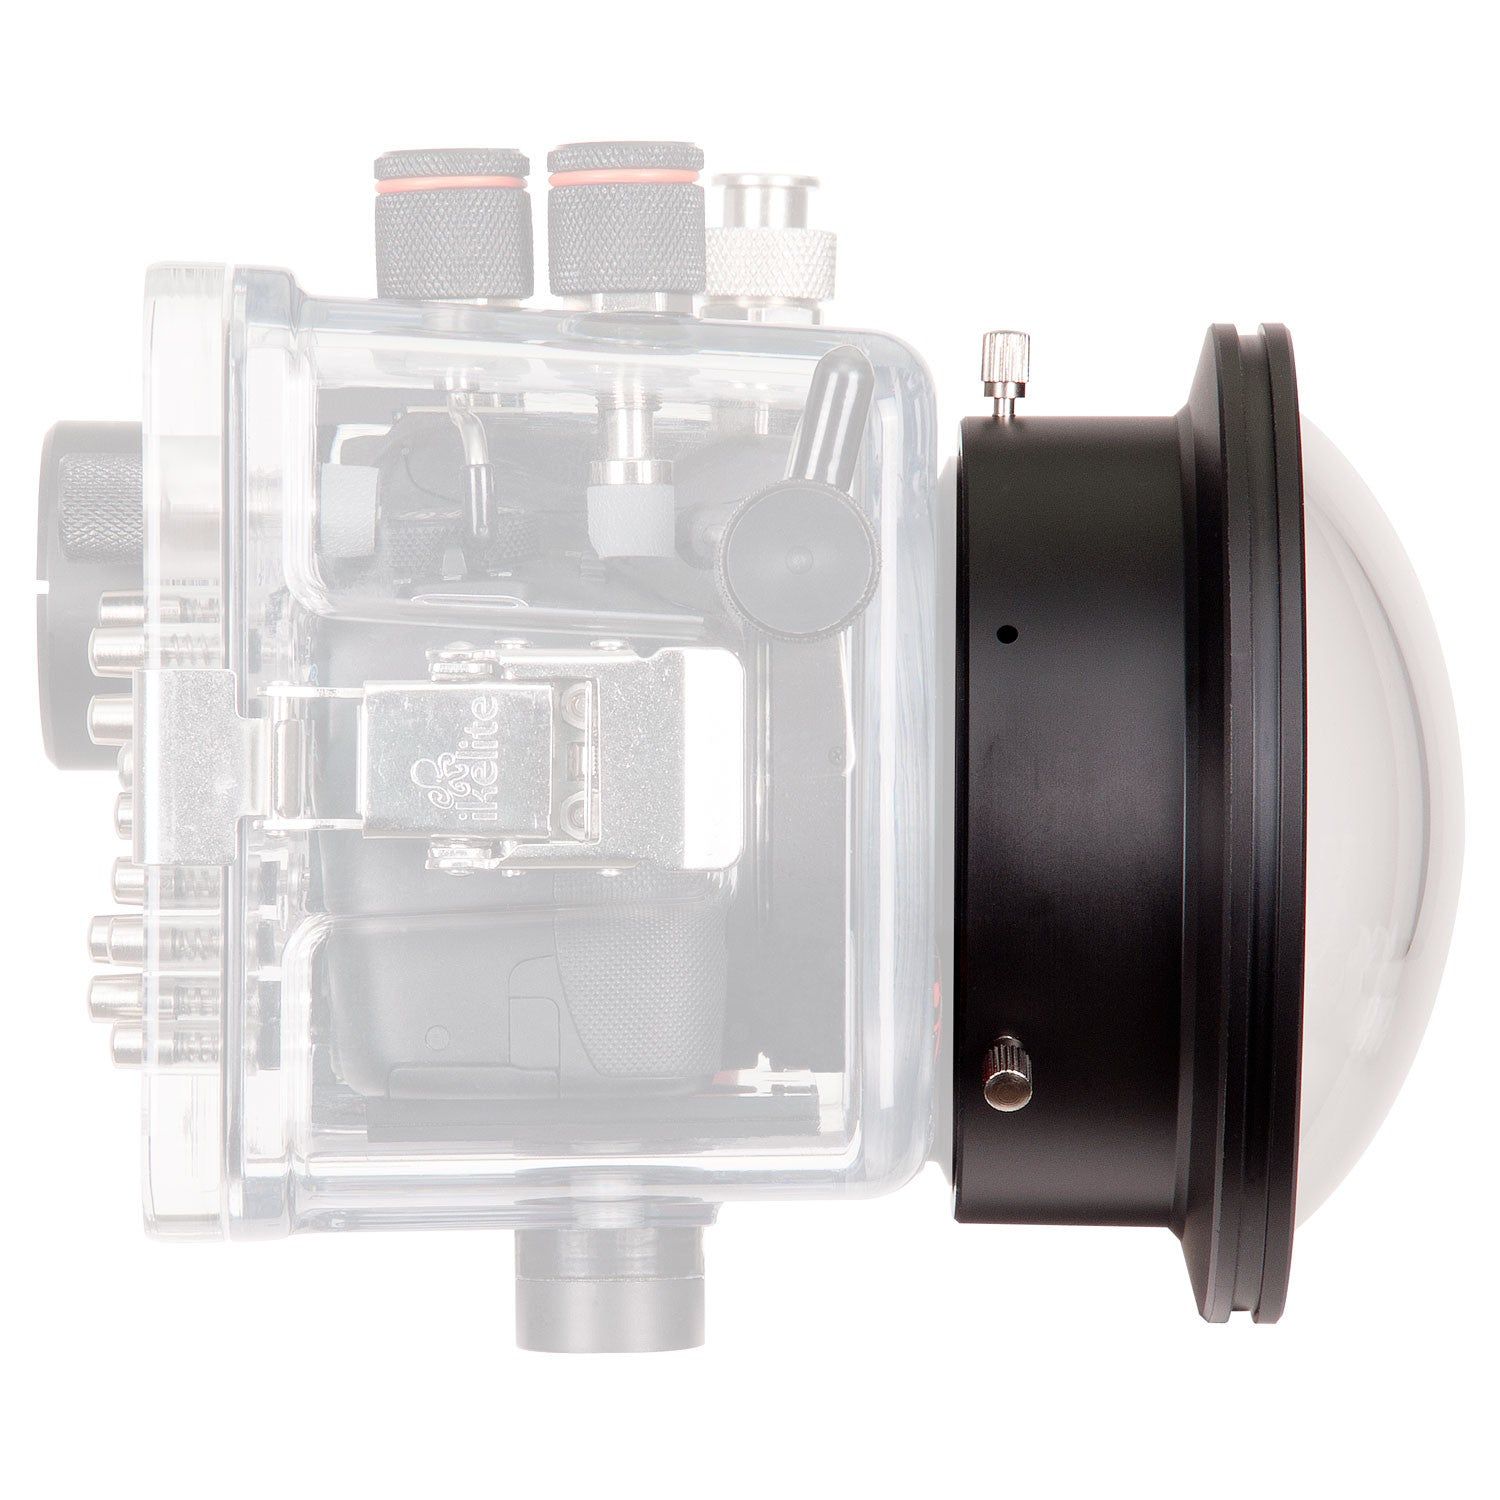 Ikelite DLM Extended 6 inch Dome Port - 5516.12